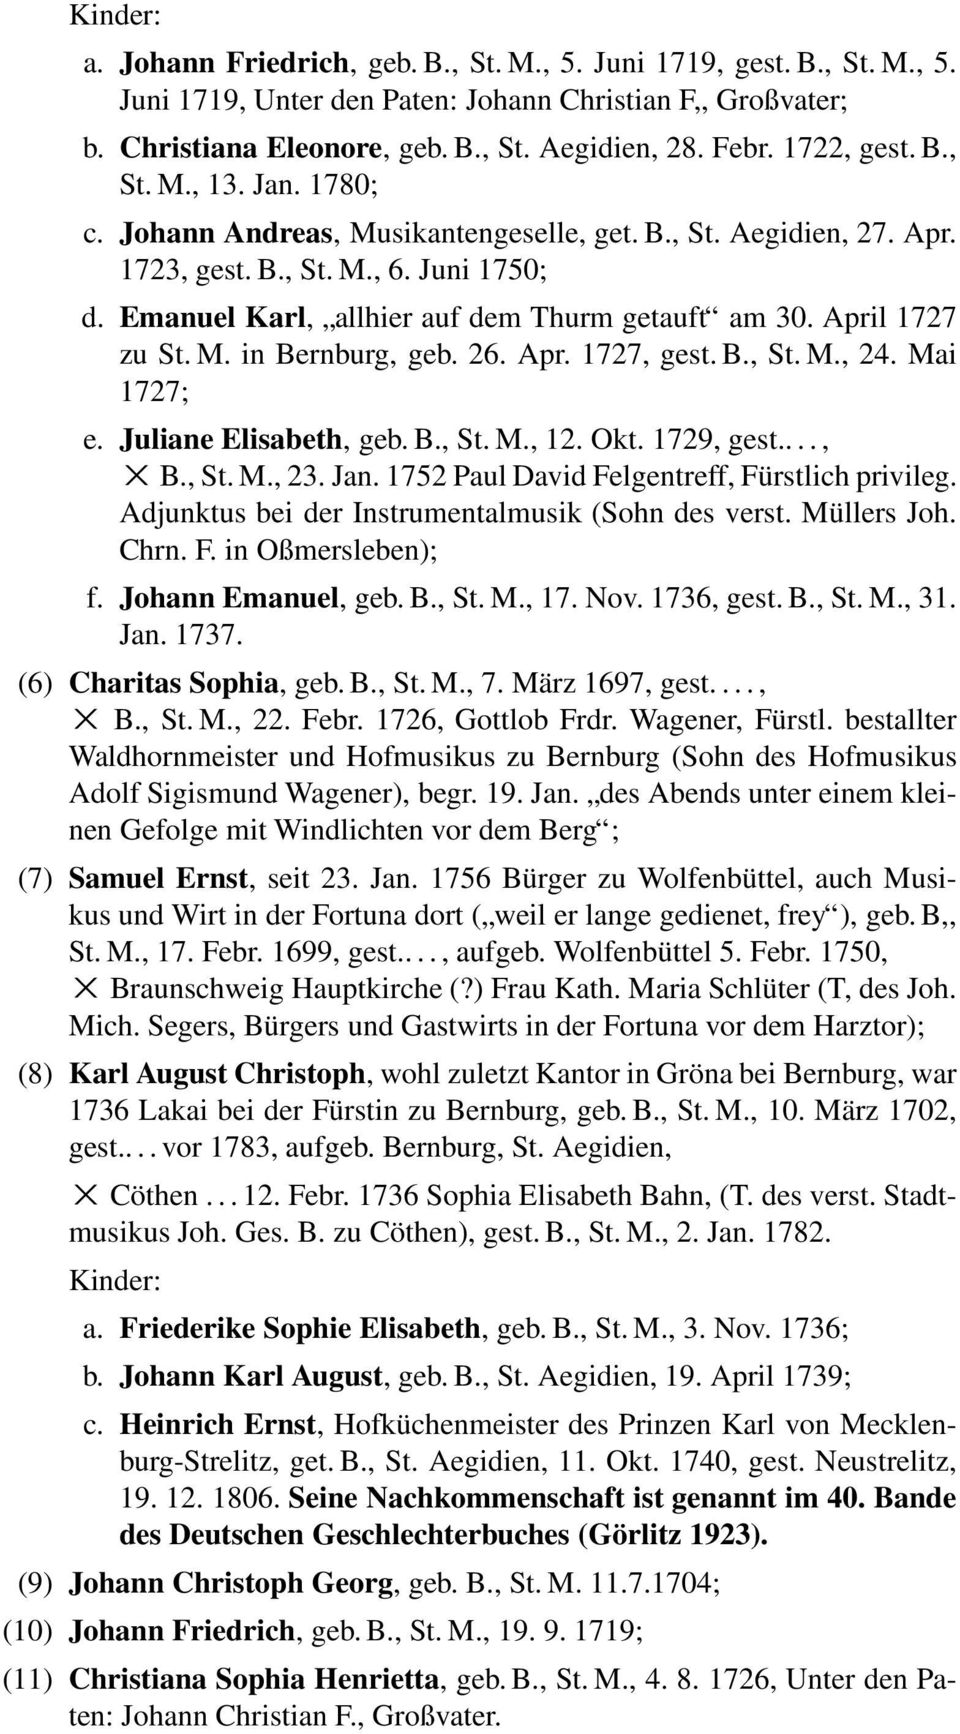 April 1727 zu St. M. in Bernburg, geb. 26. Apr. 1727, gest. B., St. M., 24. Mai 1727; e. Juliane Elisabeth, geb. B., St. M., 12. Okt. 1729, gest...., B., St. M., 23. Jan.